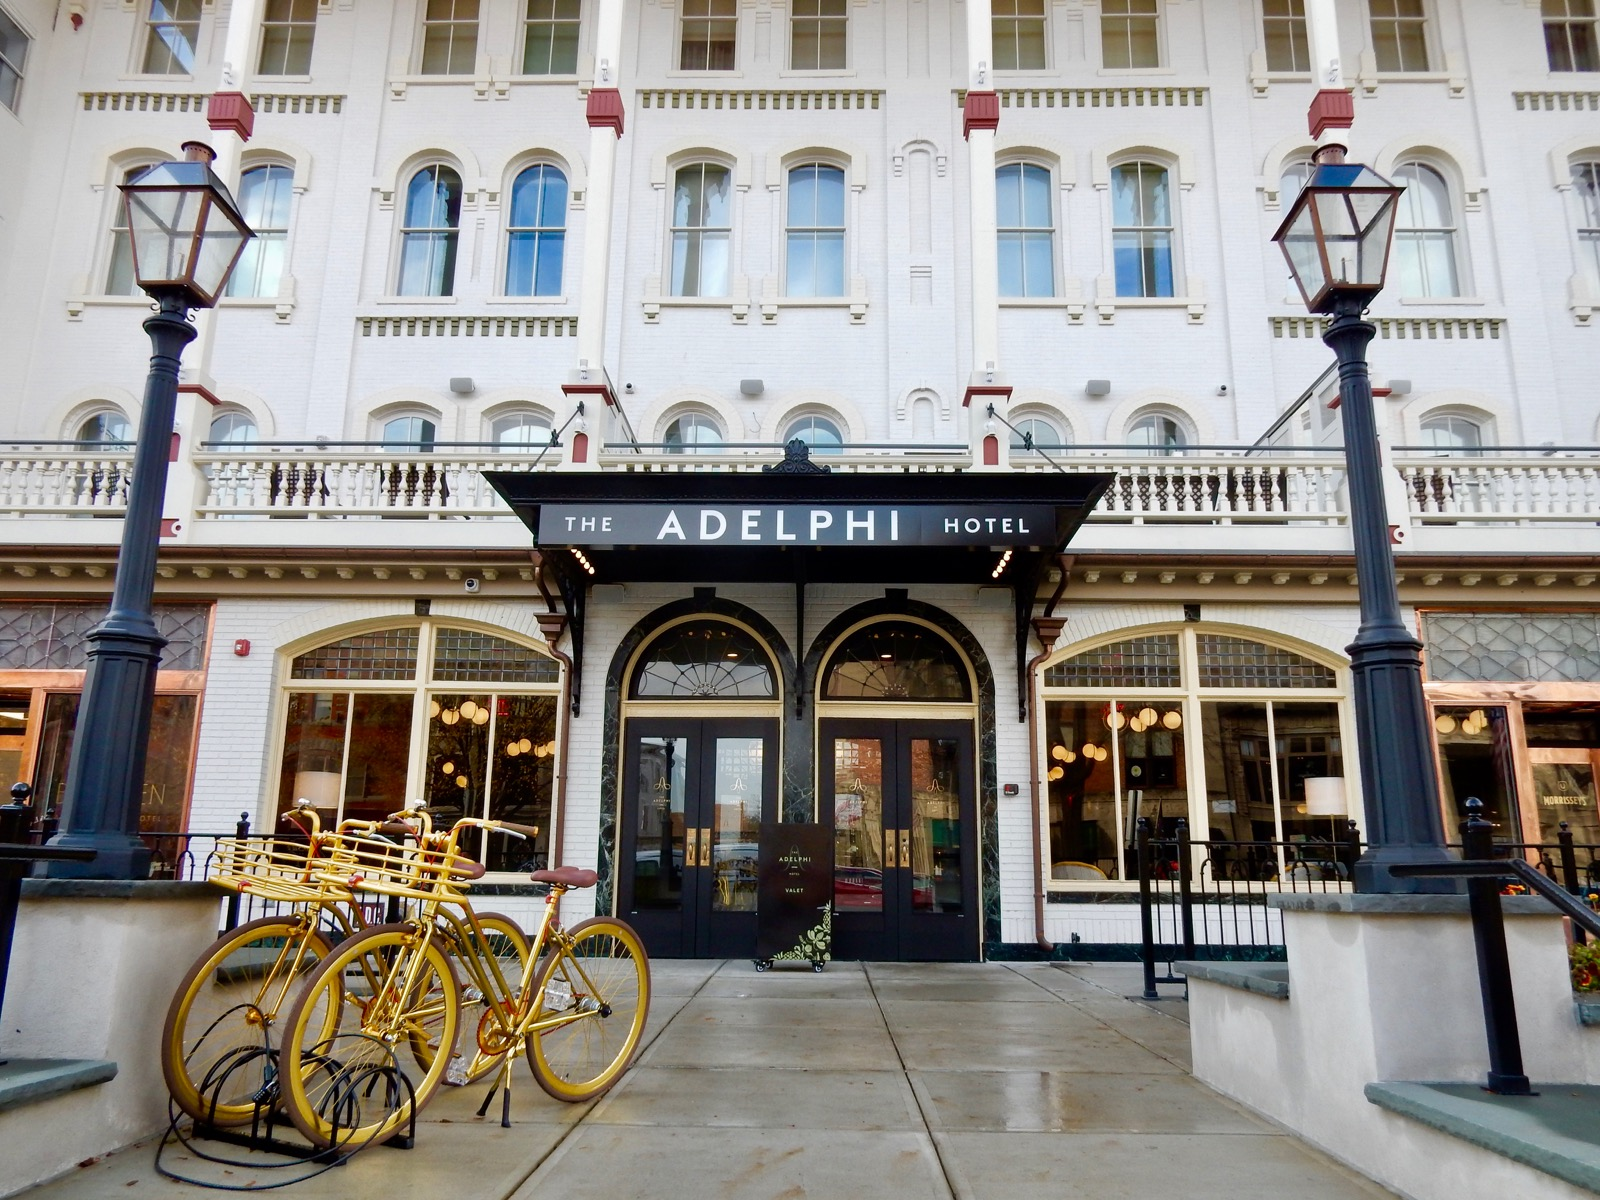 Adelphi hotel saratoga springs ny historic chic for Hotels saratoga springs new york